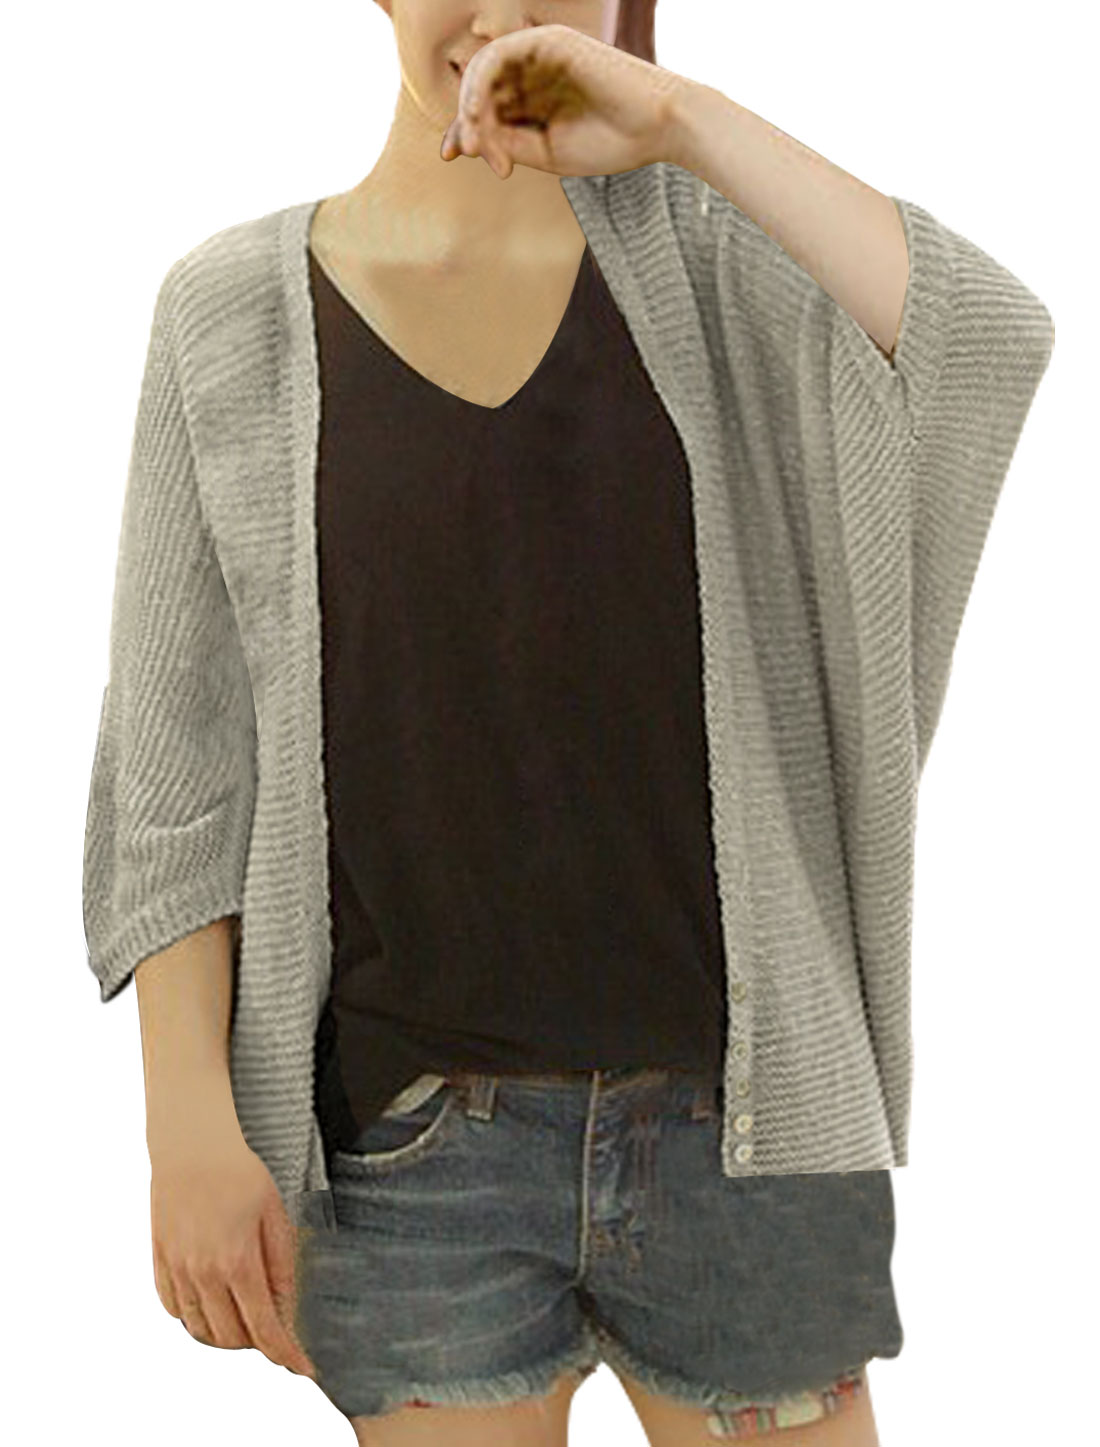 Women Cardigan Deep V Neck Warm Knitting Hem Stretch Batwing Winter Sweater Apricot M